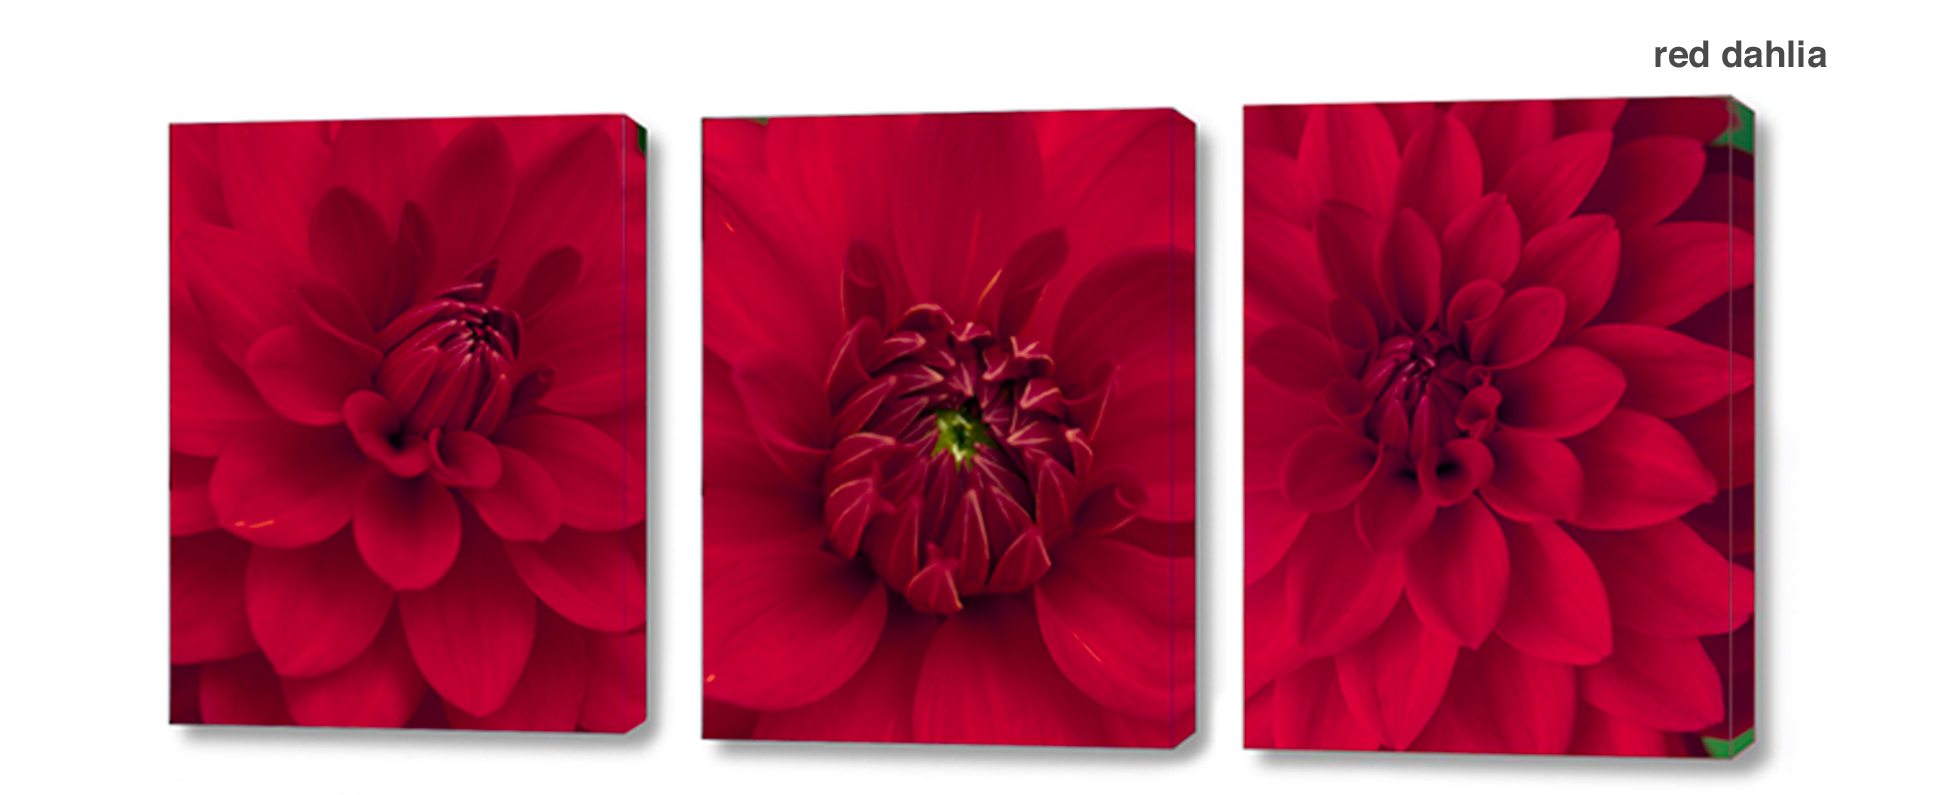 red dahlia series - Floral Series Wall Decor Macro Photography Matted & Giclée Canvas Prints